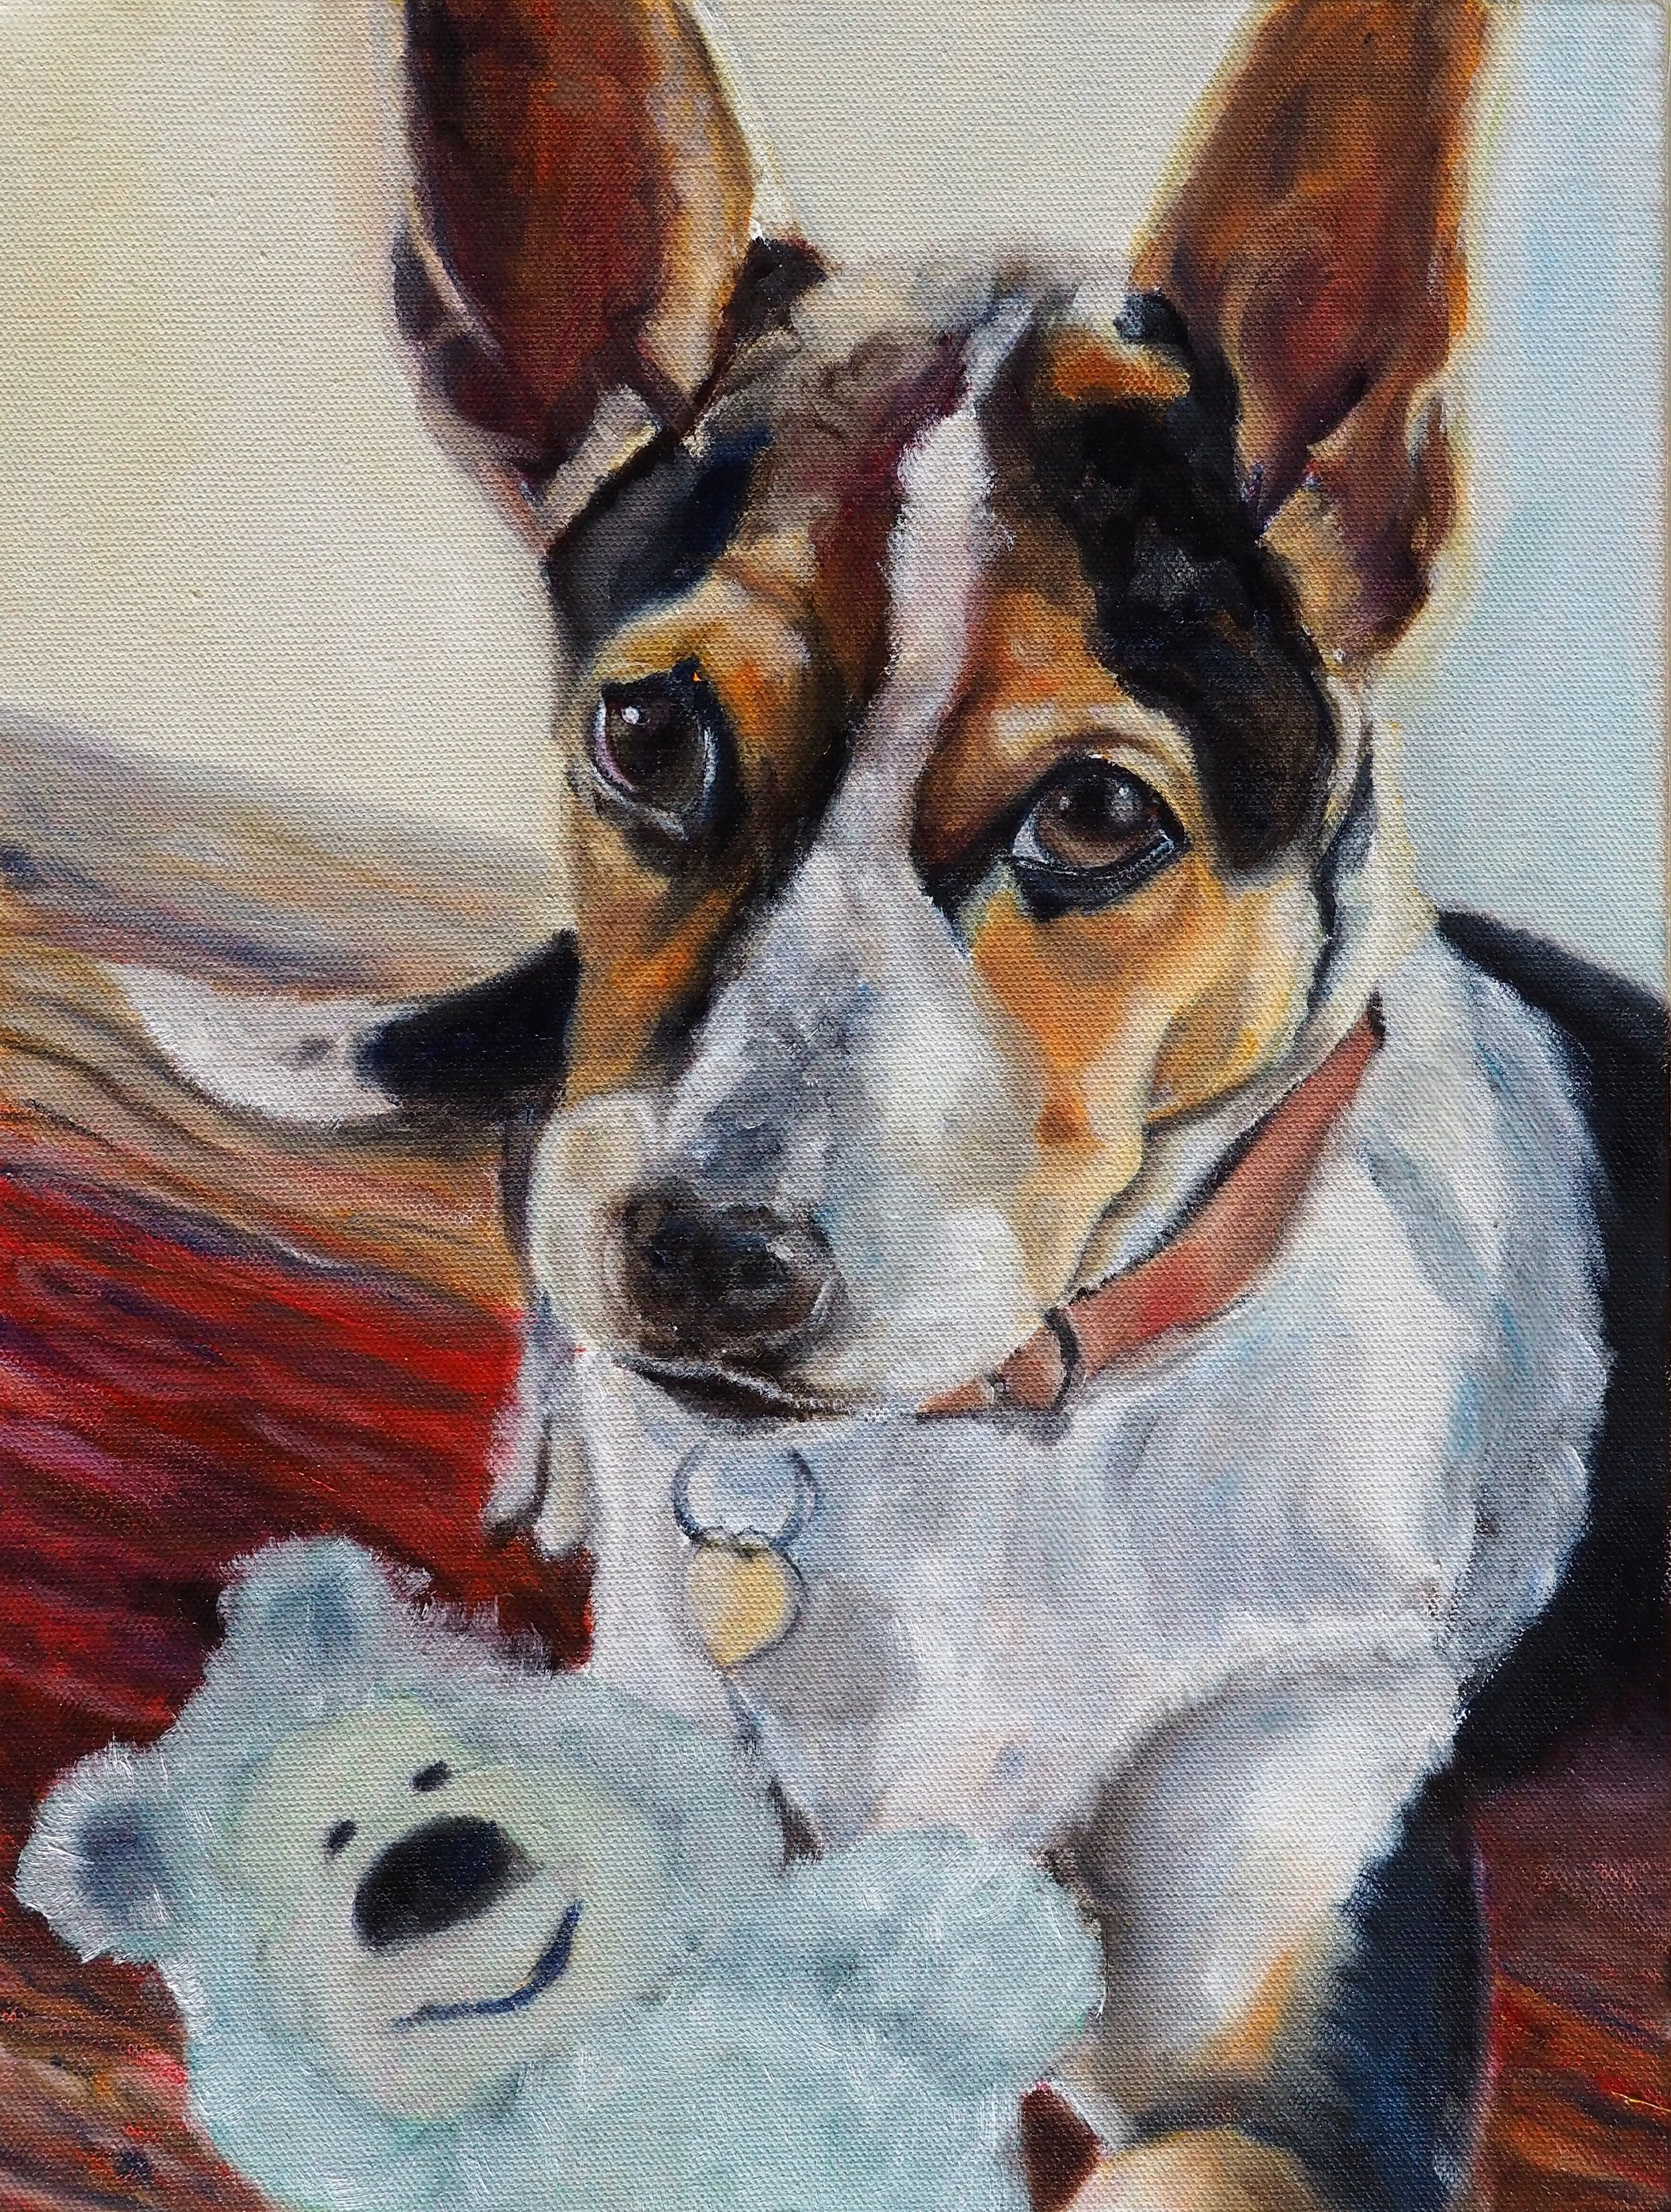 DOG PAINTING OF PUP AND TEDDY BY OPAL PASTRO ART